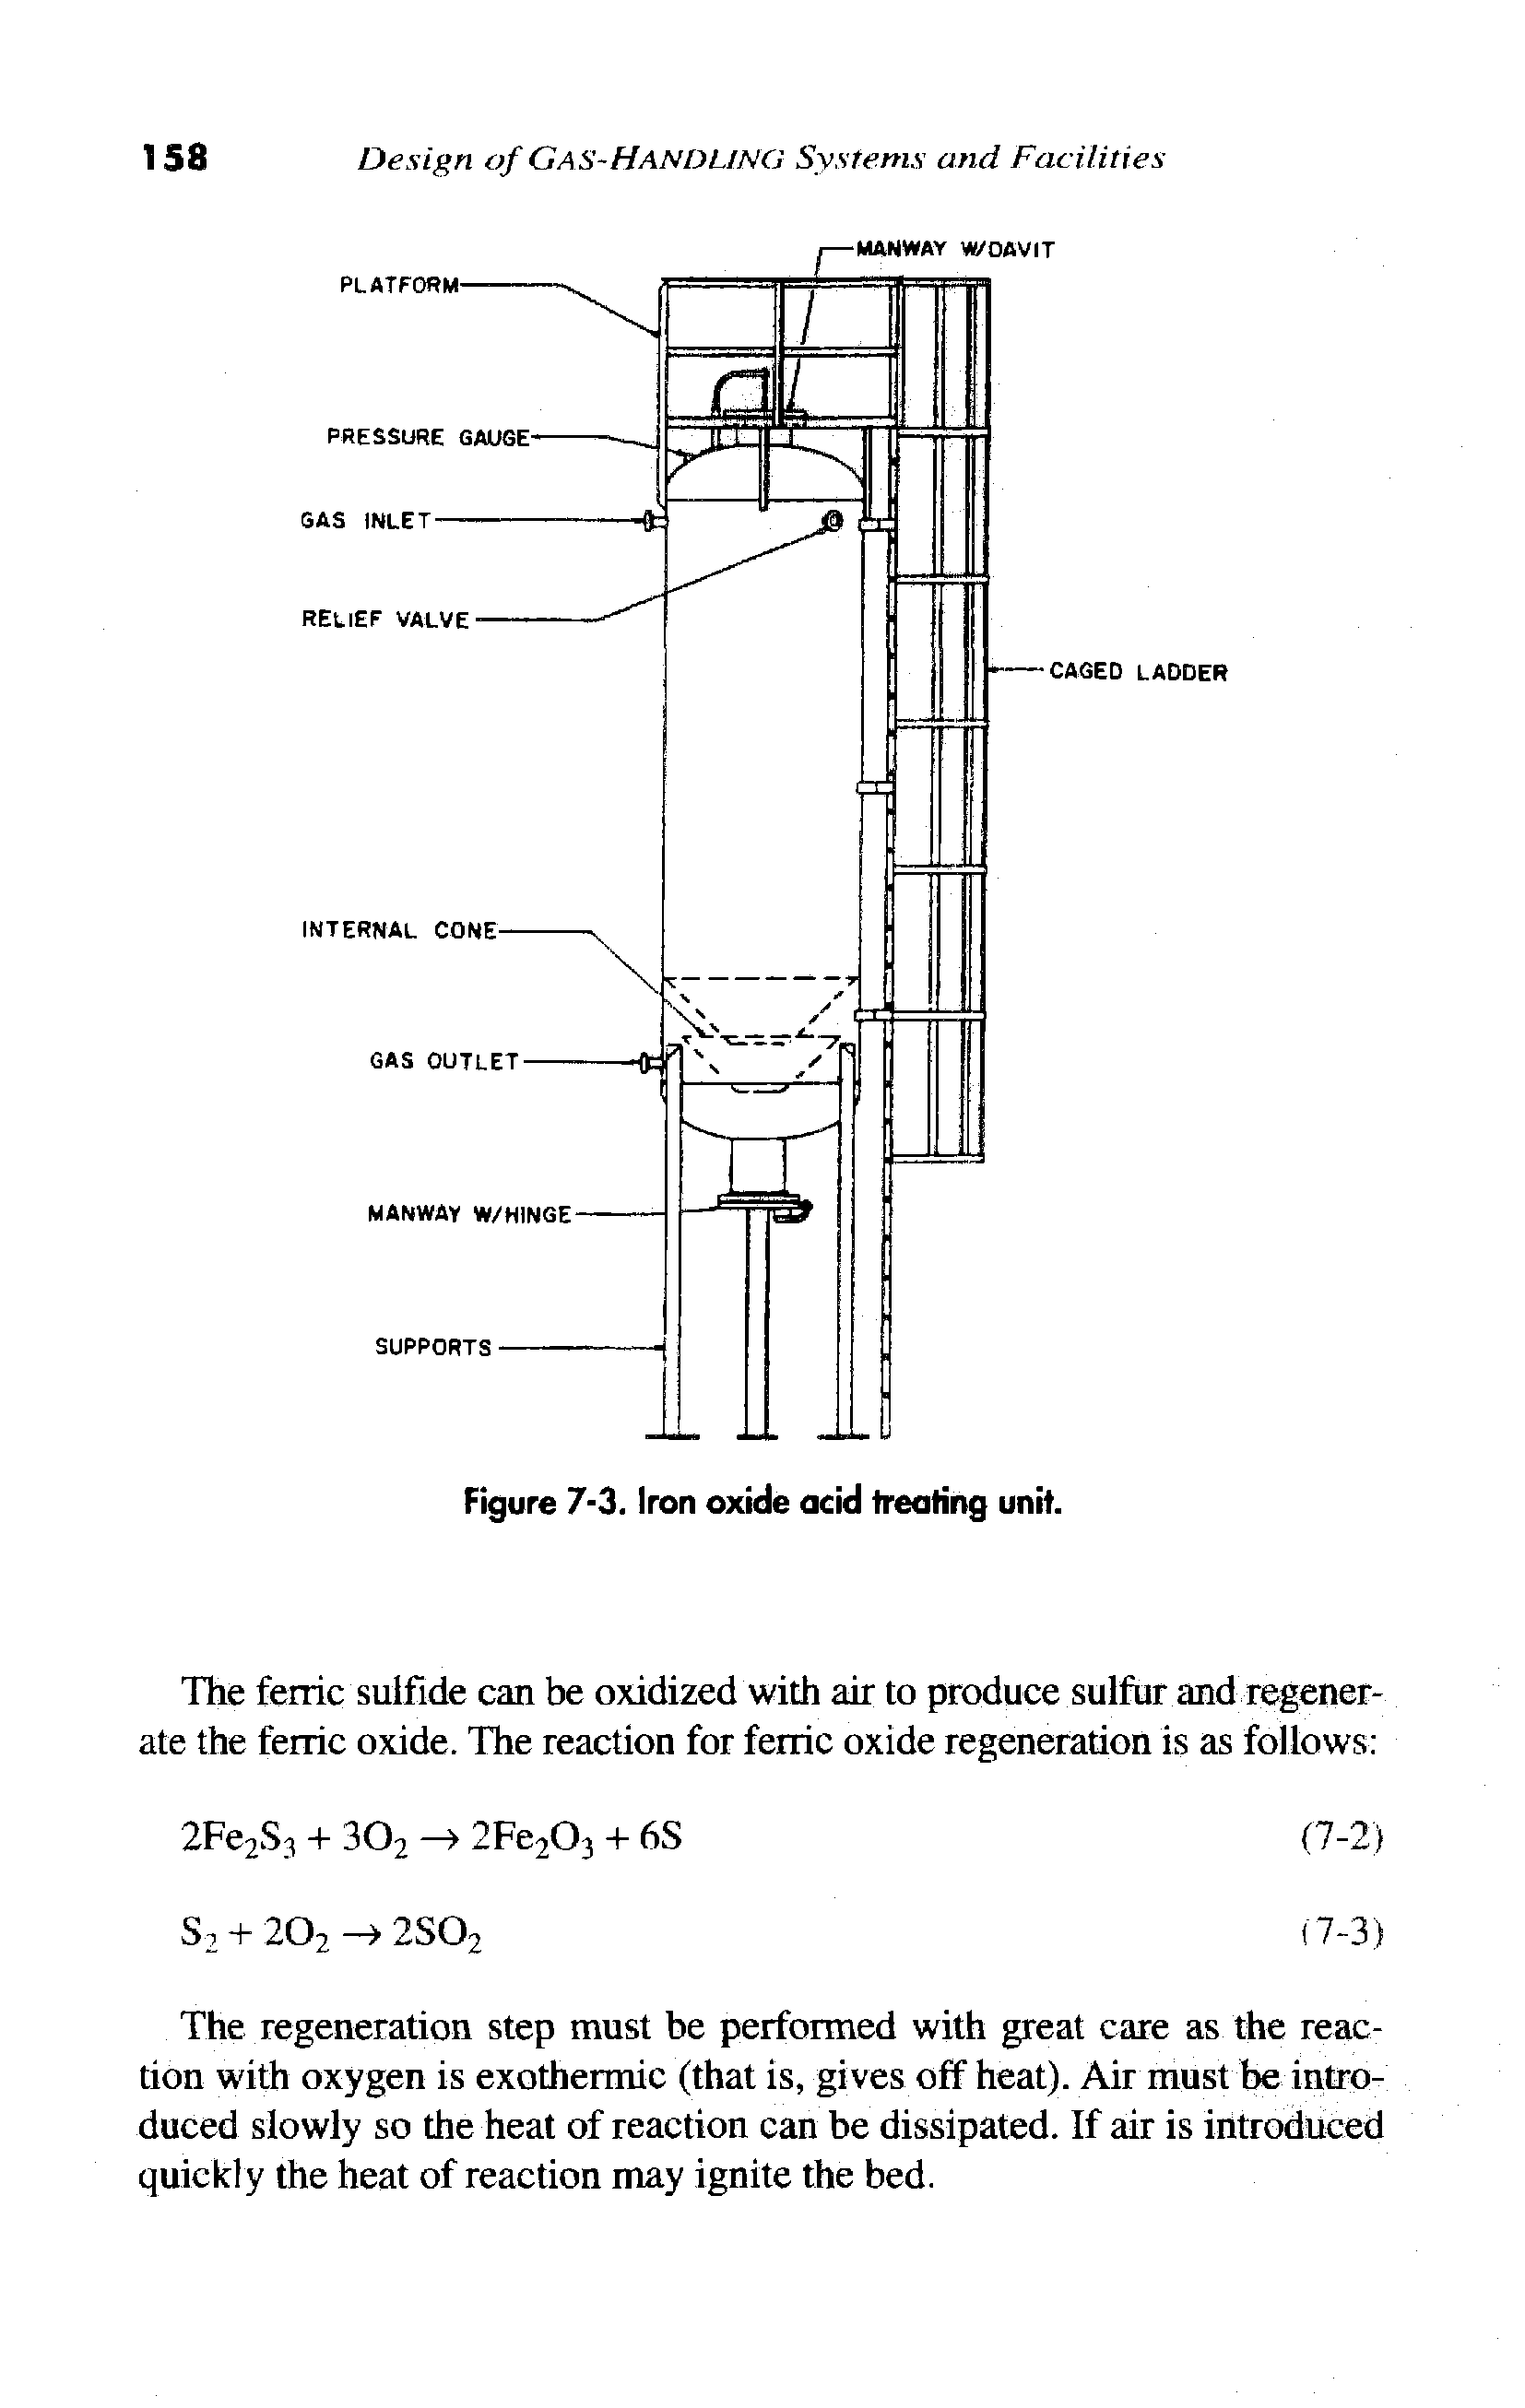 Figure 7-3. Iron oxide acid treating unit.